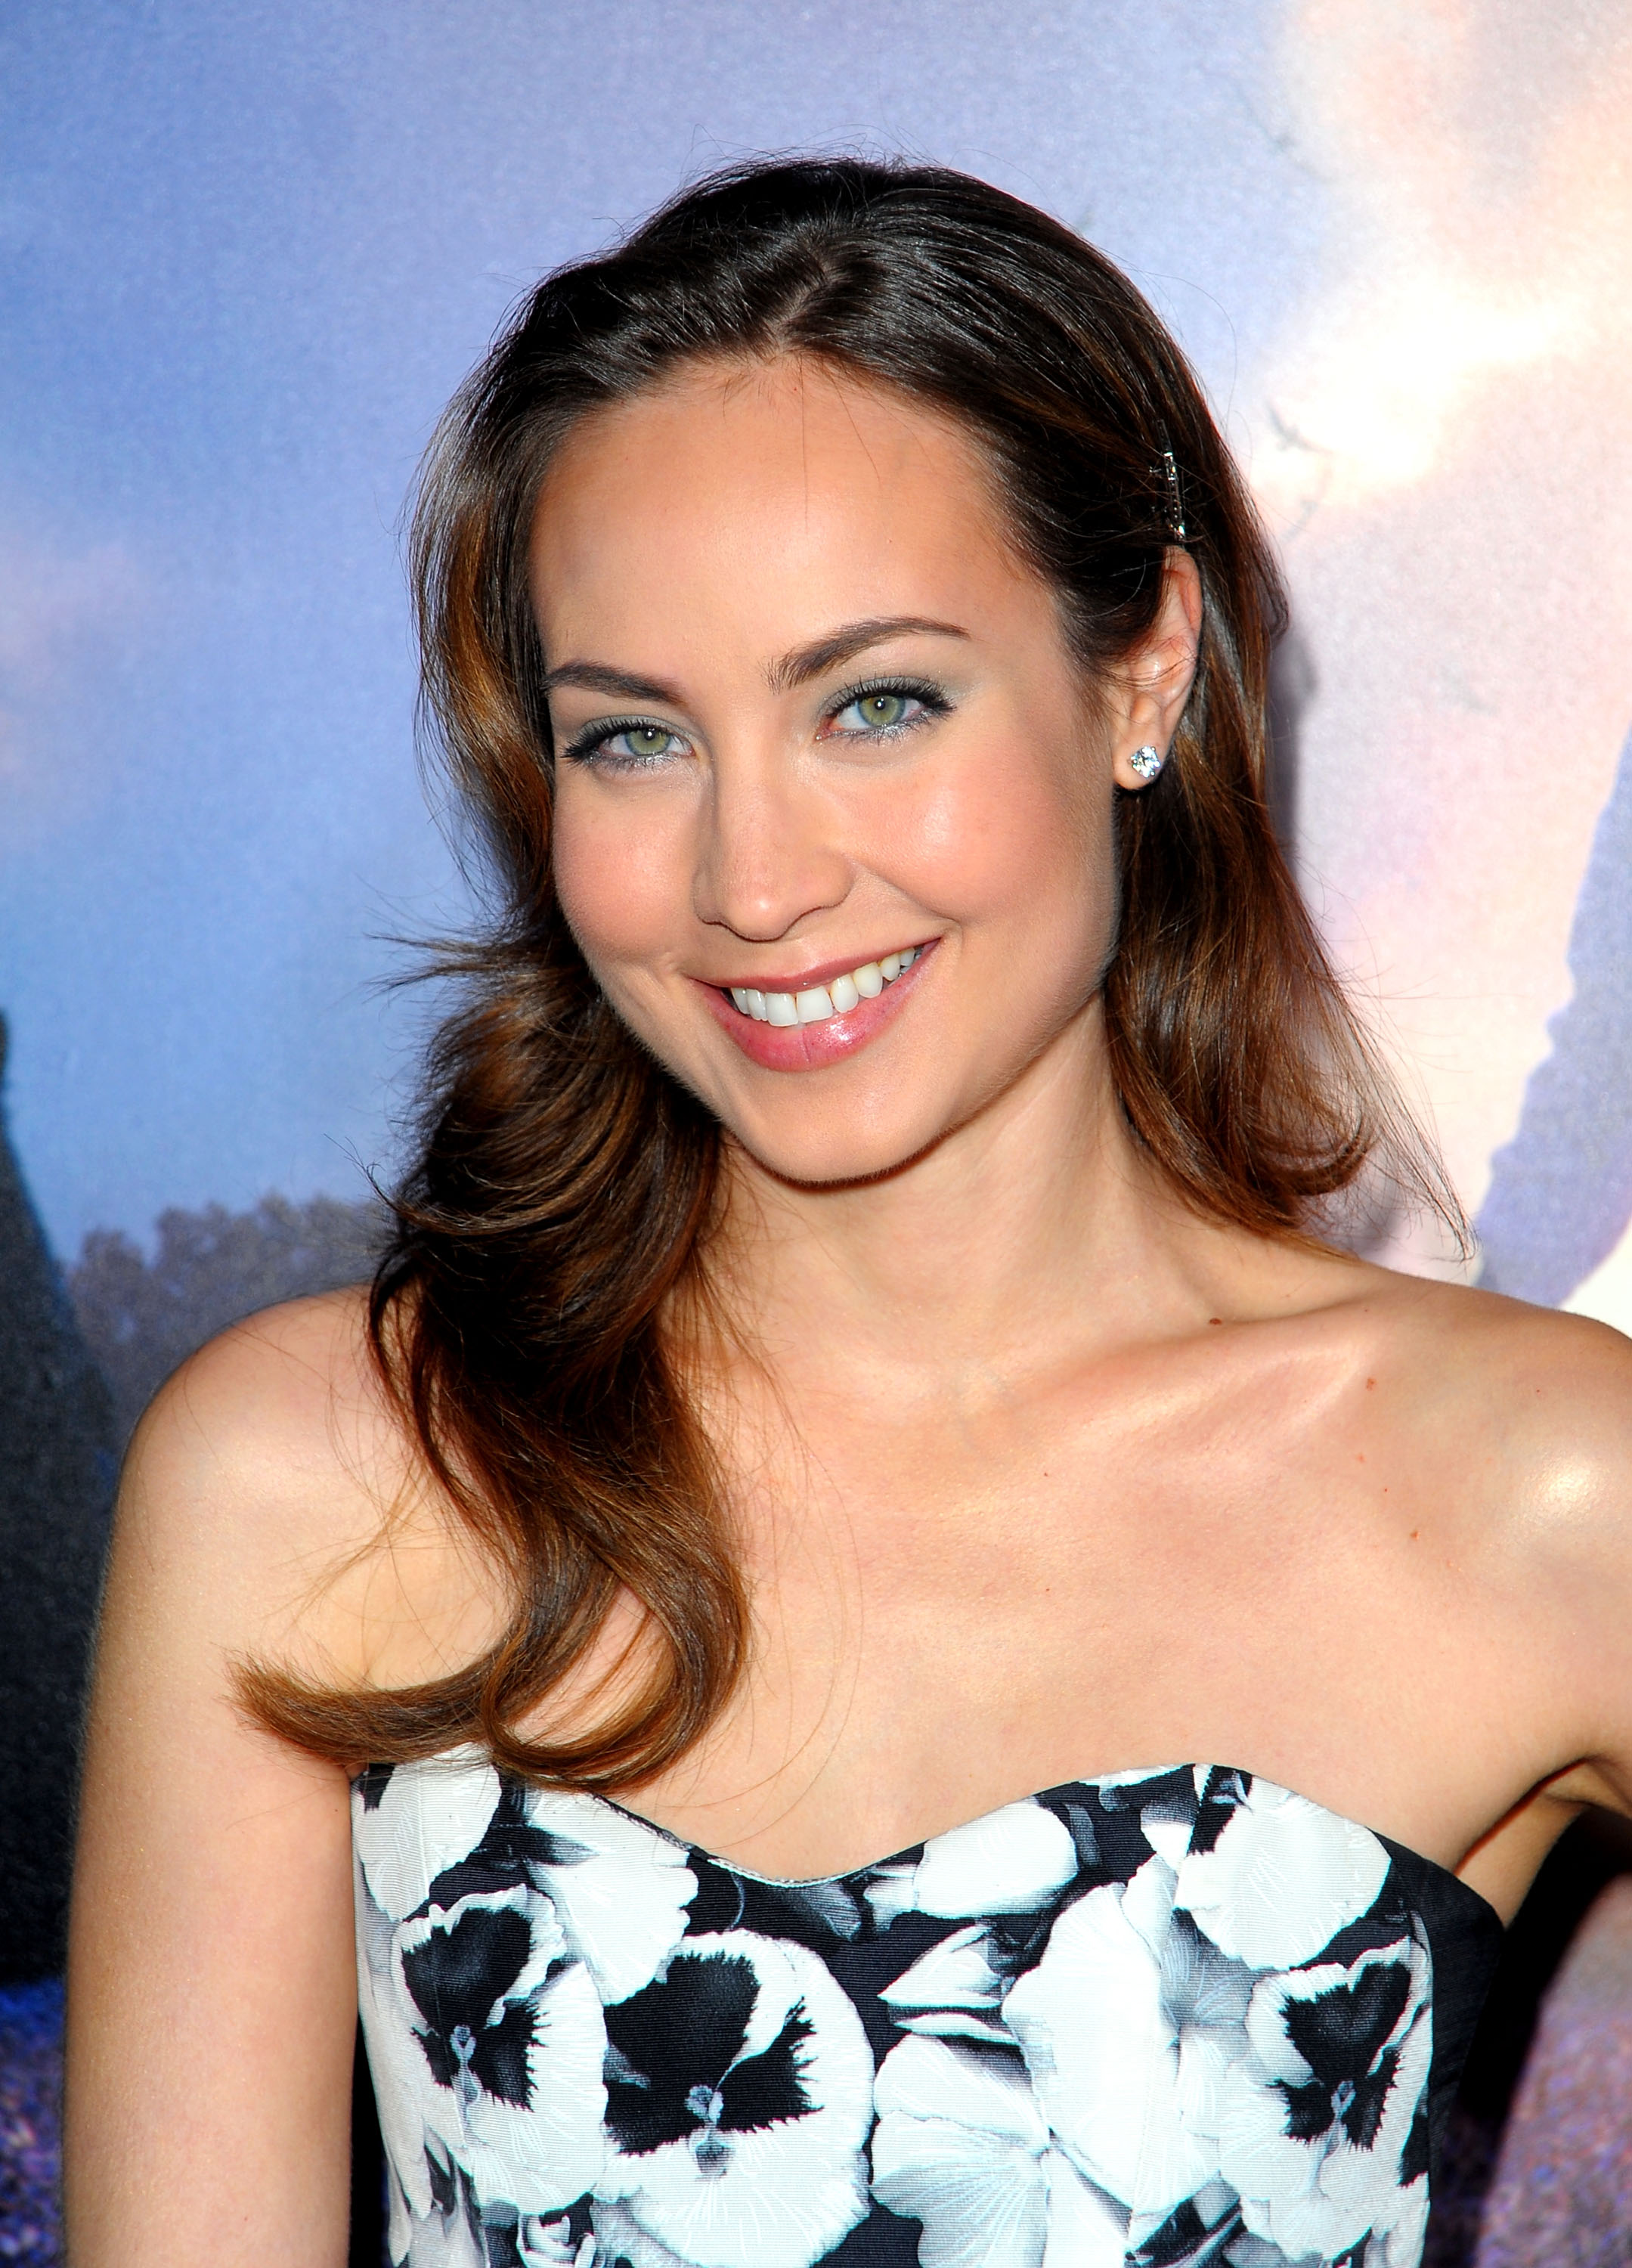 117593 Courtney Ford large Philippe chantreau, a babes. That is what this tied true tales is quite.